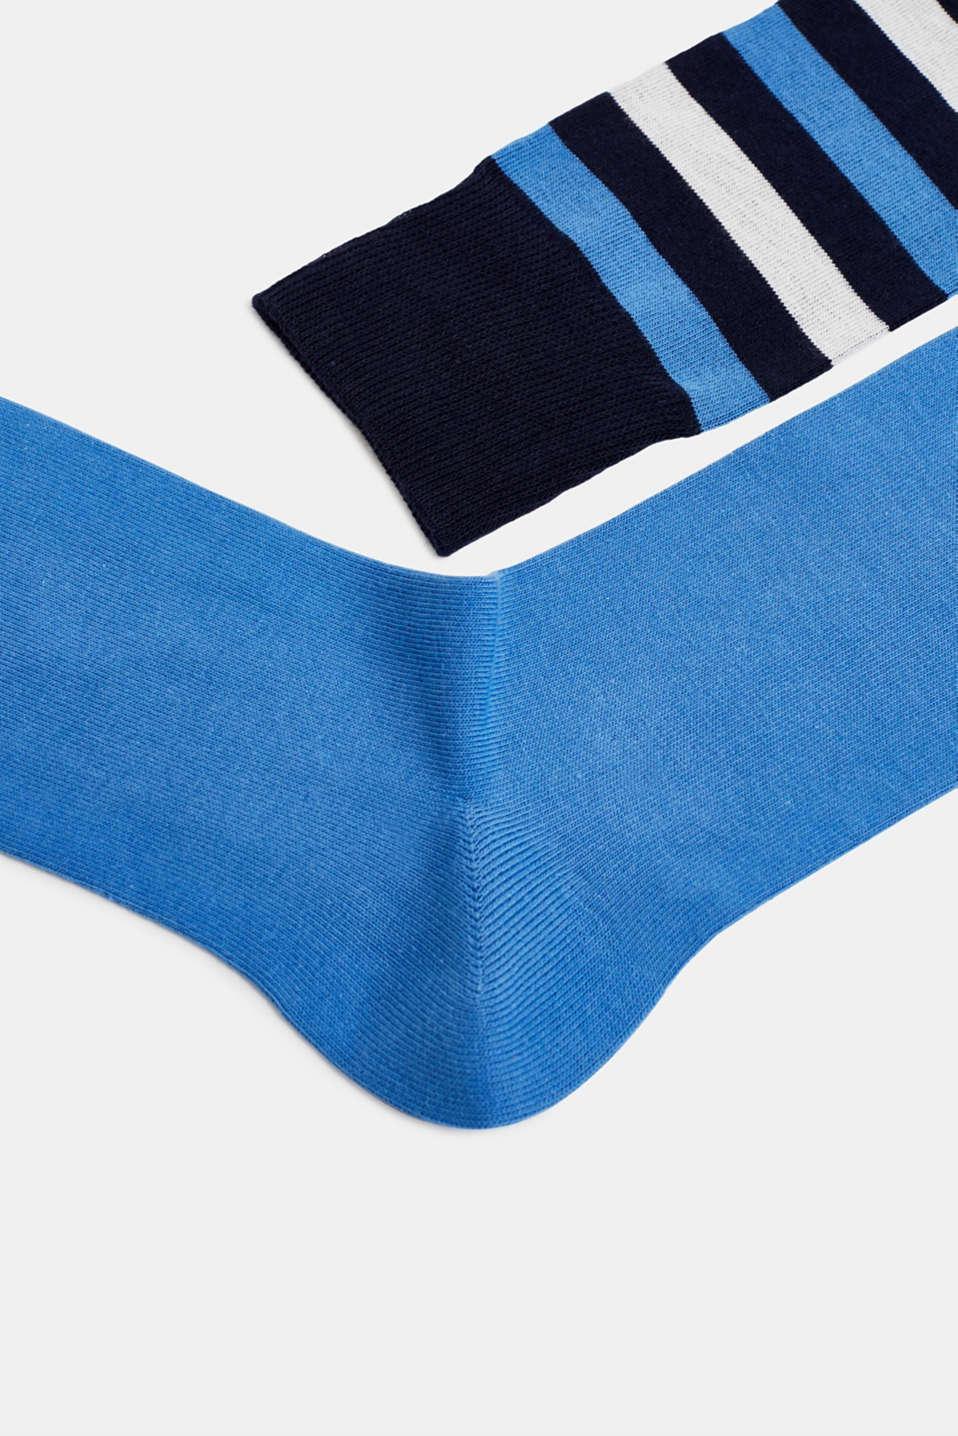 In a double pack: plain and striped socks, MARINE, detail image number 1